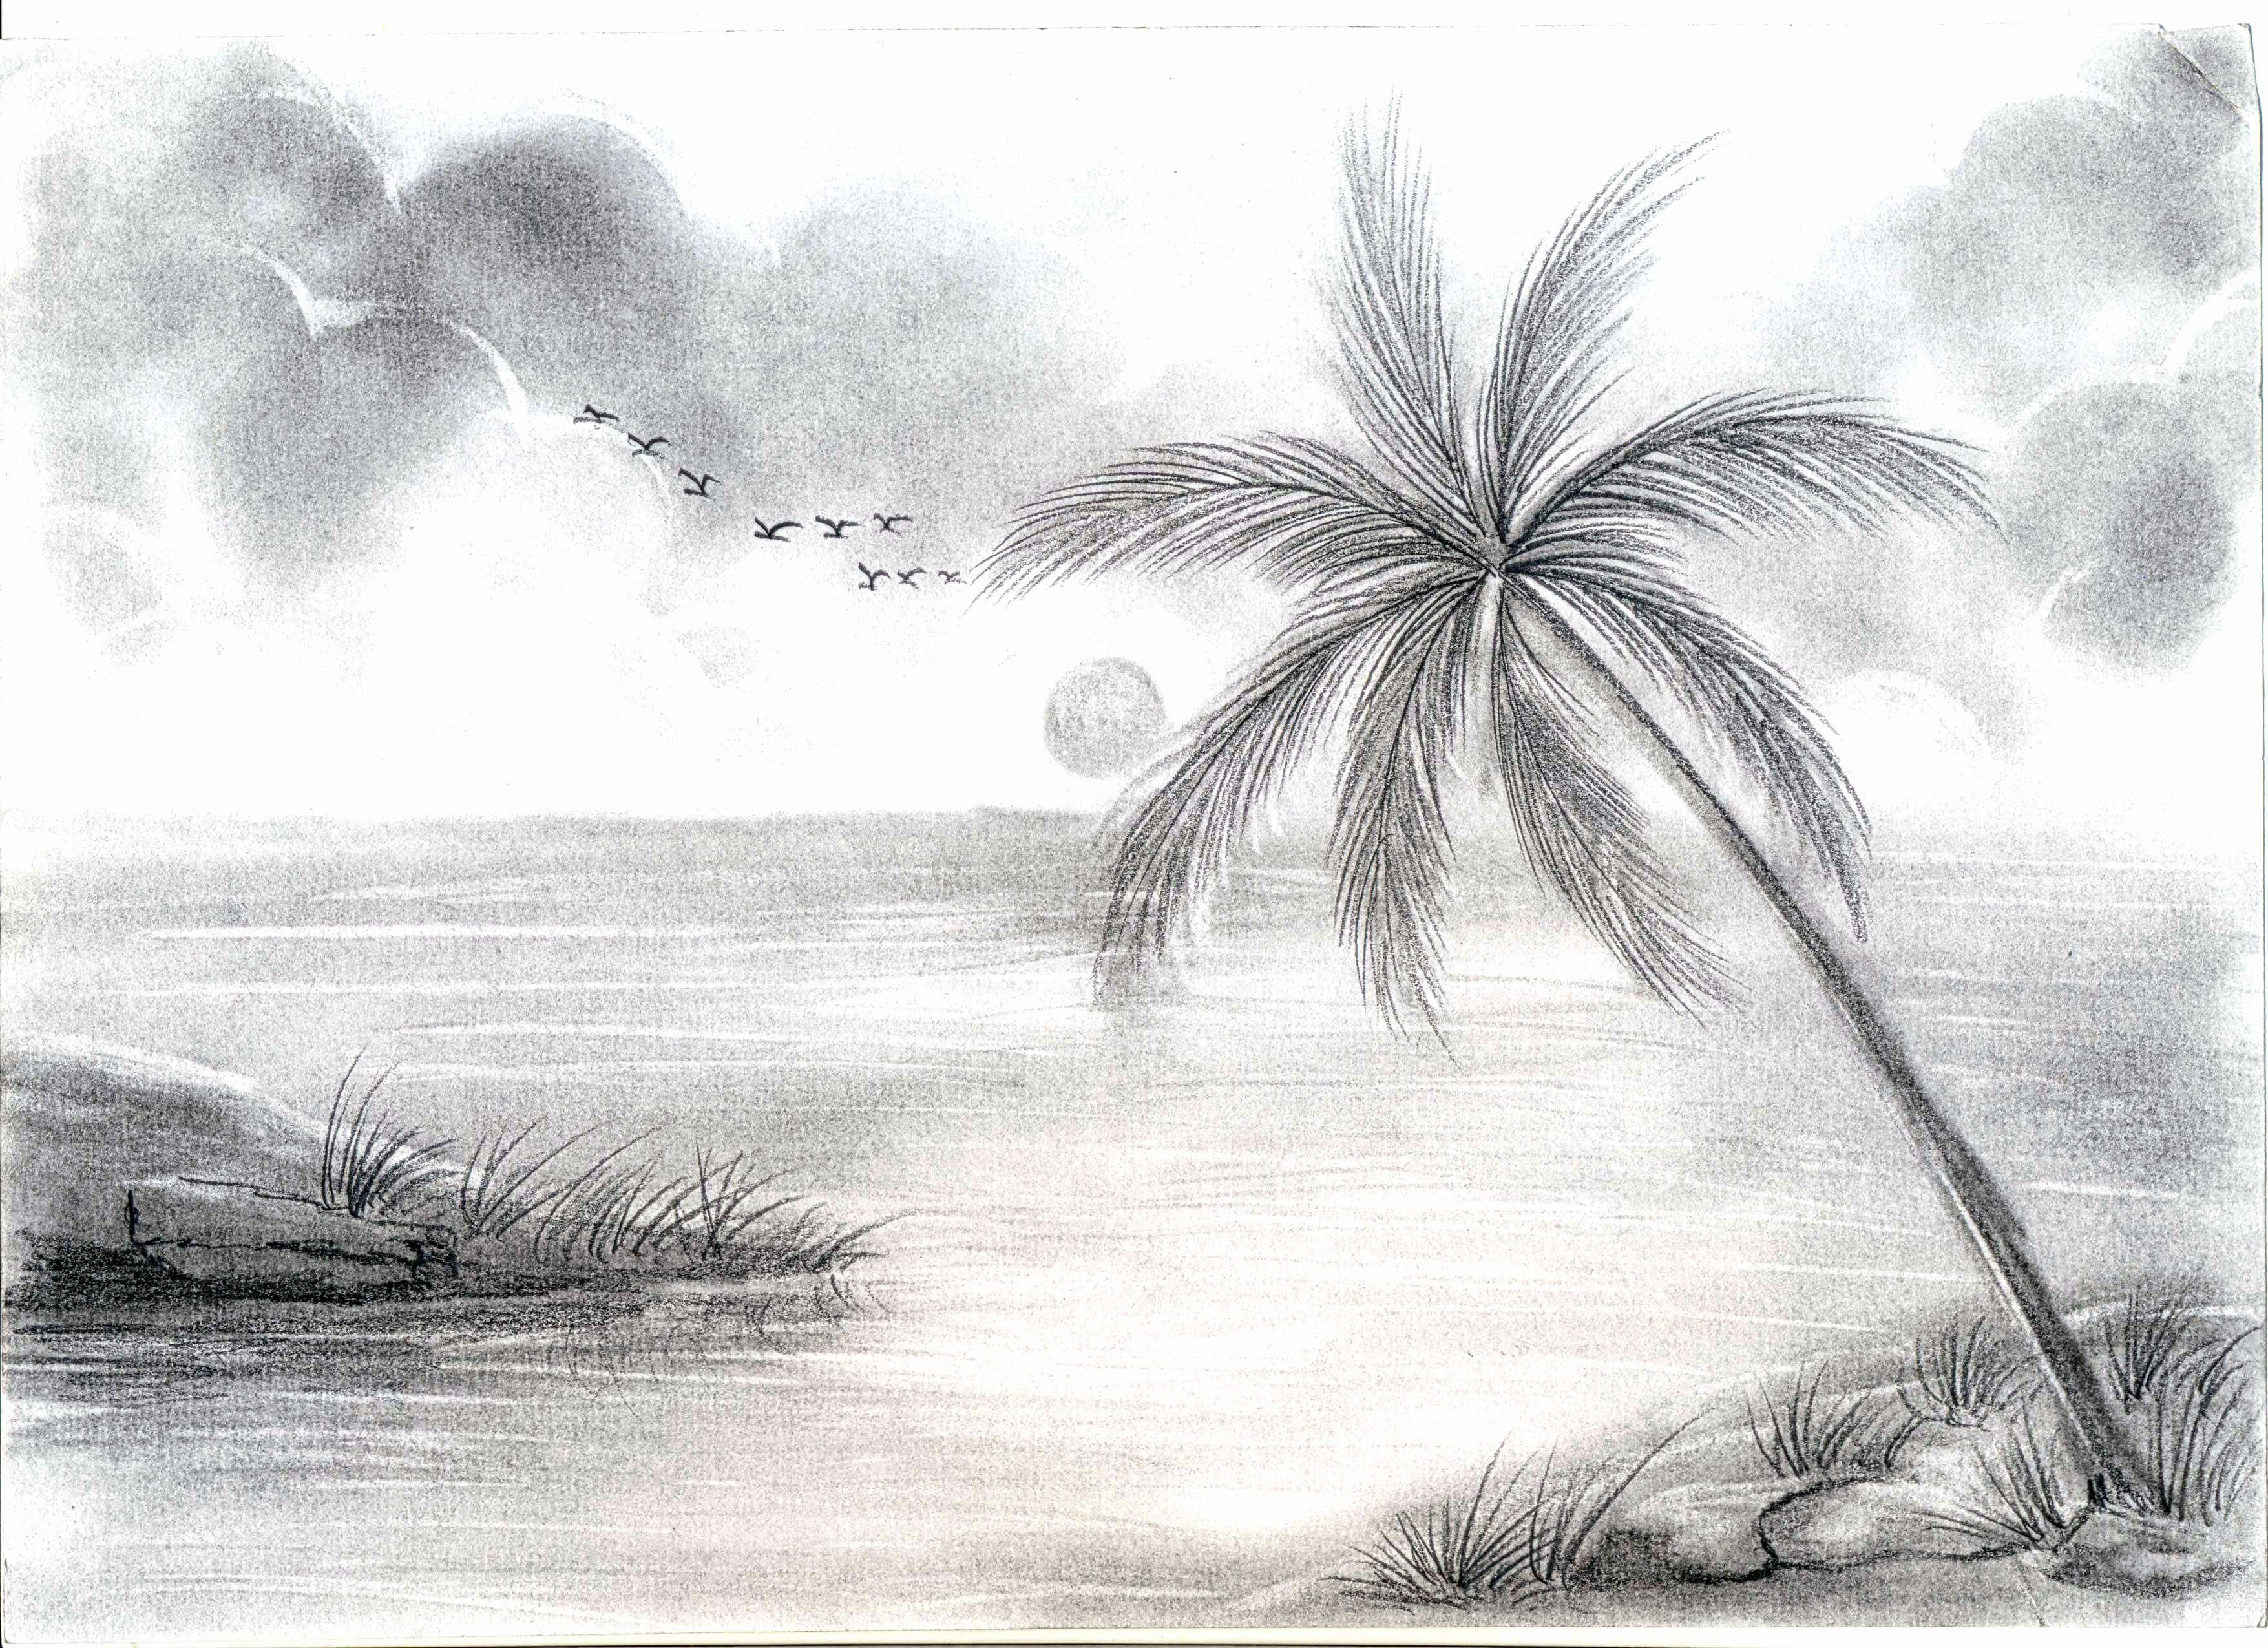 Landscape Drawing Ideas Awesome Nature Scenry Sketch Ideas Pencil Drawings Landscape Ideas Pencil Drawing Scenery Landscape Sketch Easy Nature Drawings